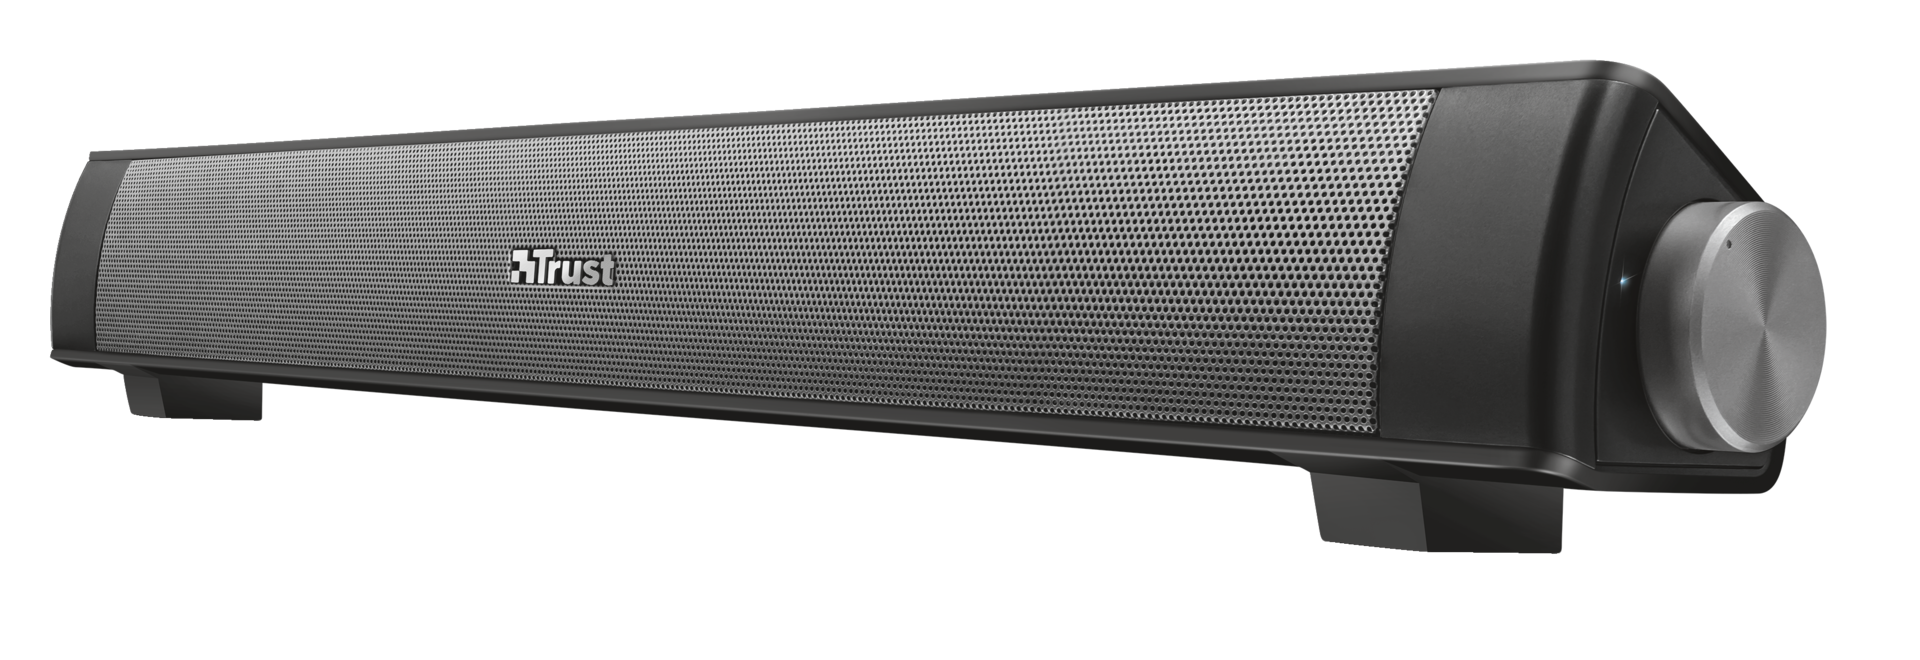 TRUST Lino Bluetooth Wireless Soundbar Speaker